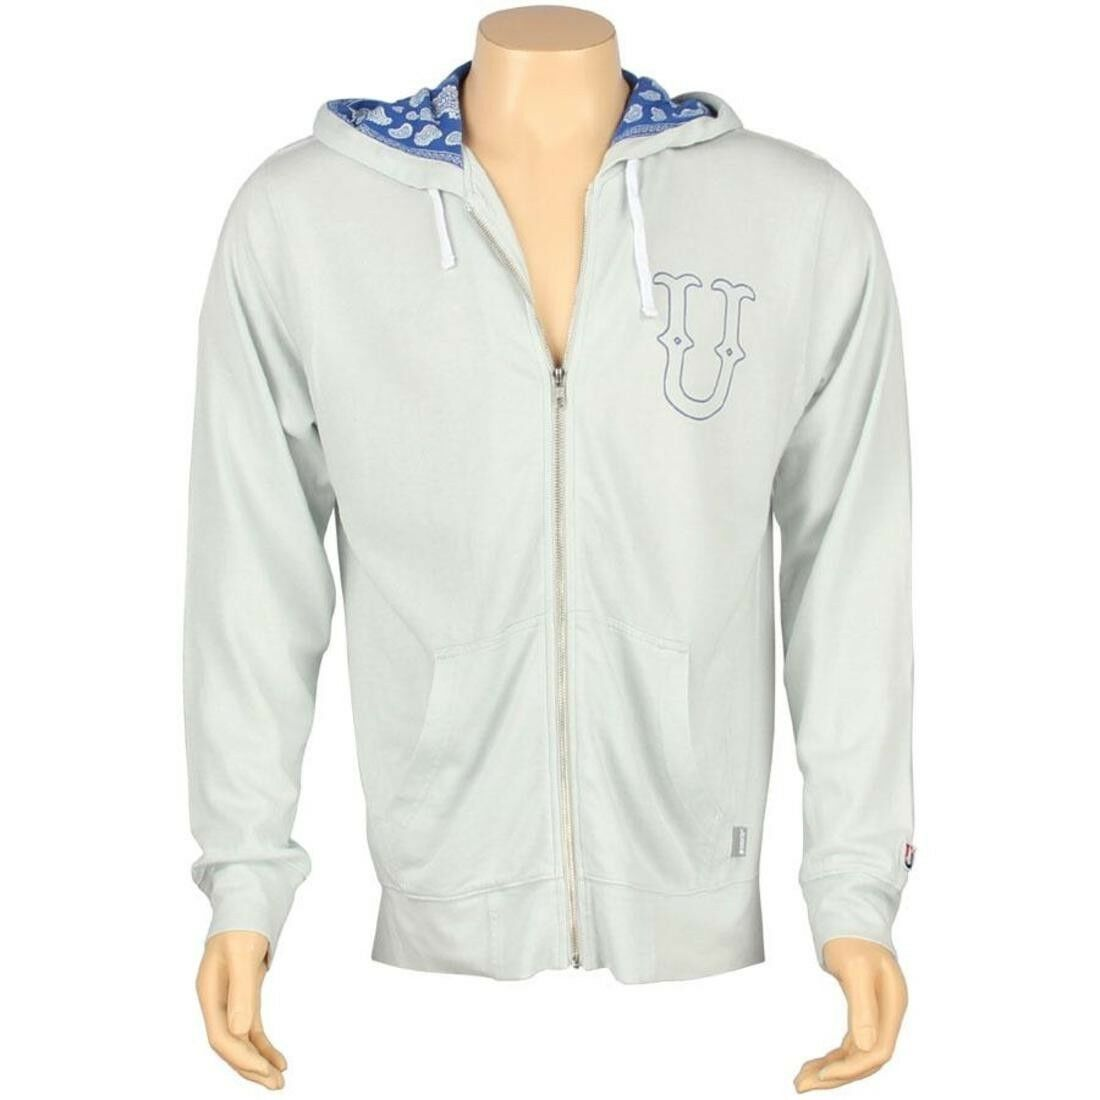 87.99 Undefeated U And D Zip Up Hoody (Grau) 5018127GRY